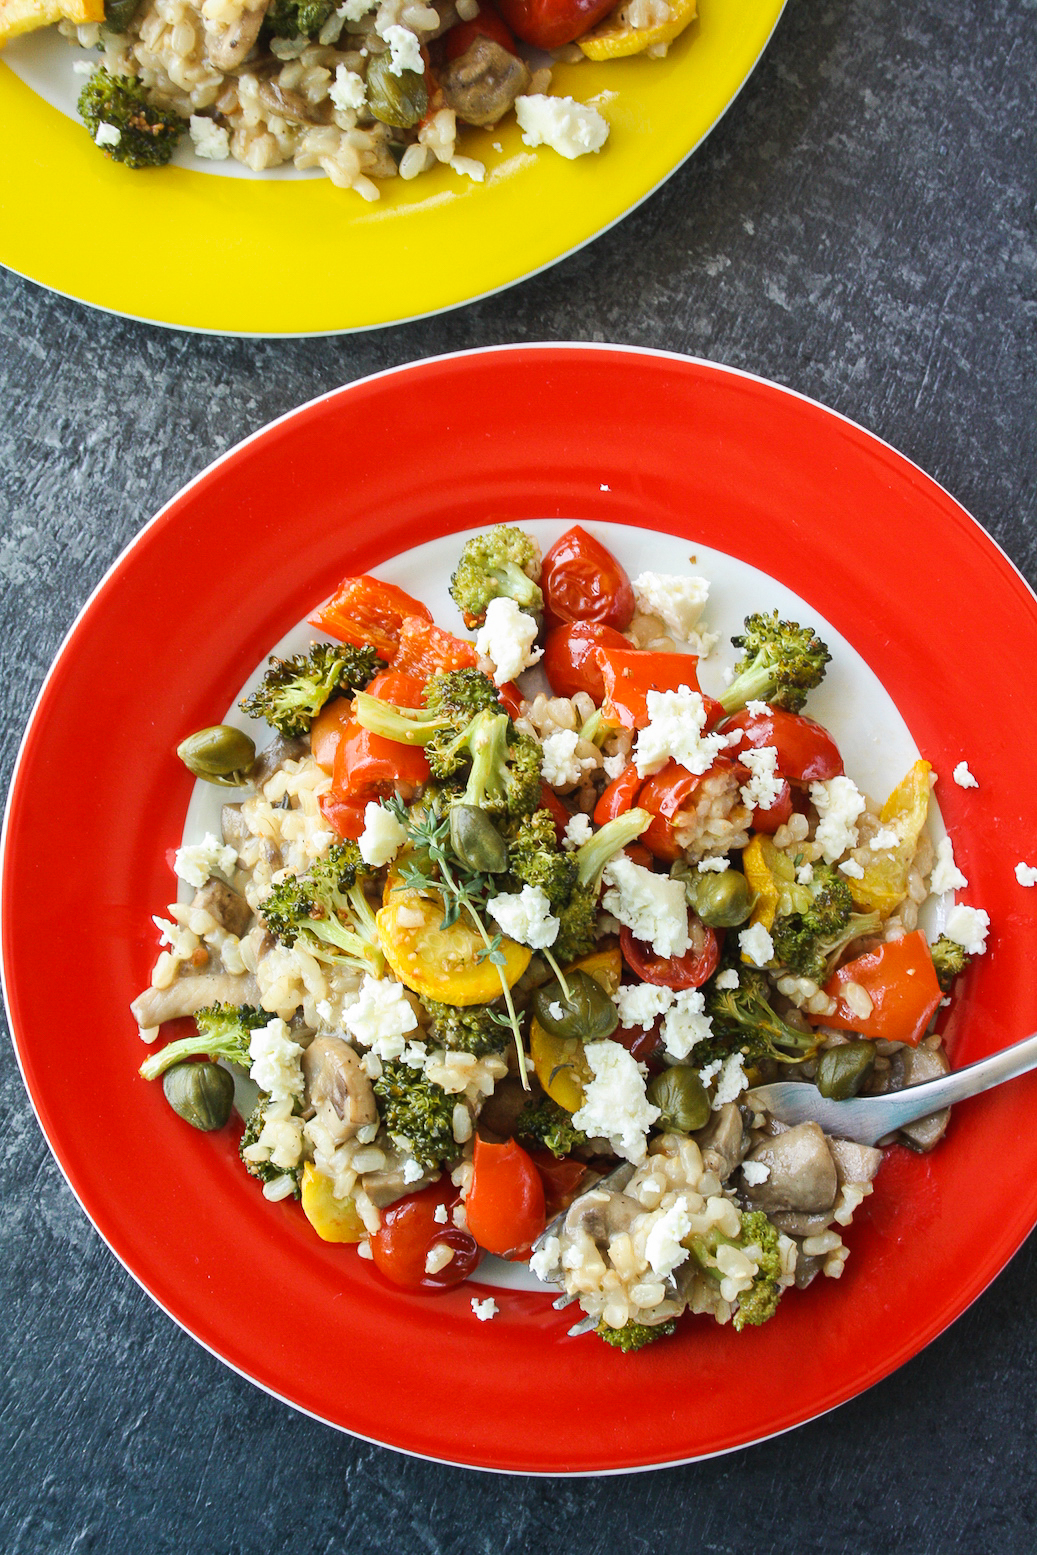 Hearty, healthier brown rice risotto with lots of veggies!